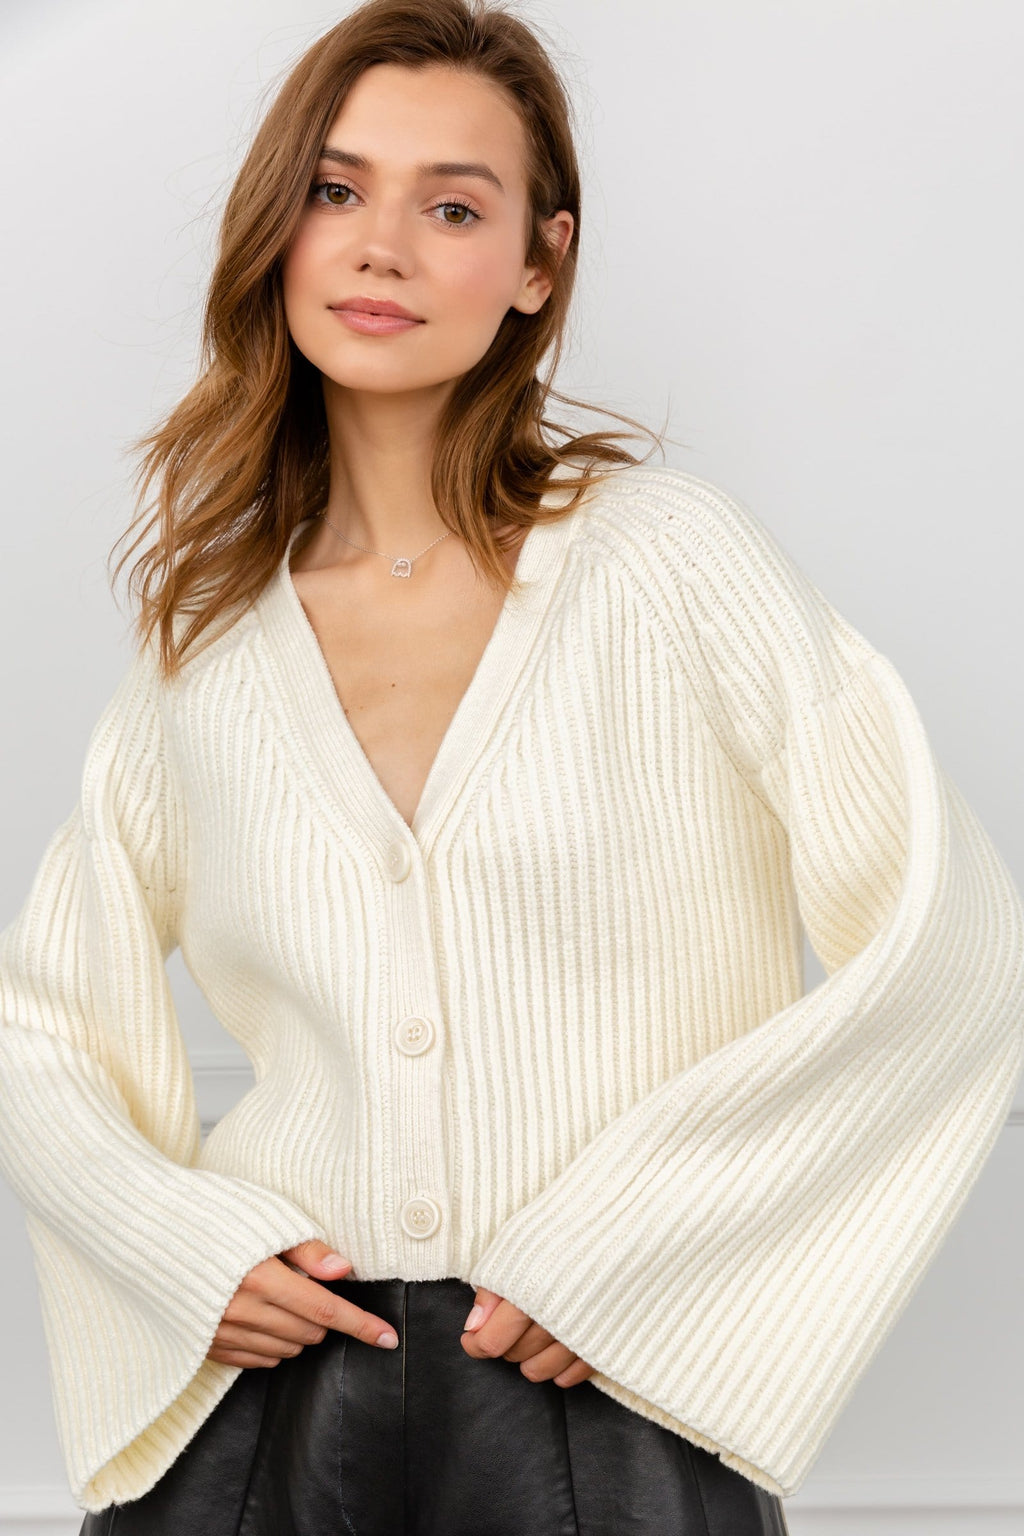 Gal White Cropped Cardigan